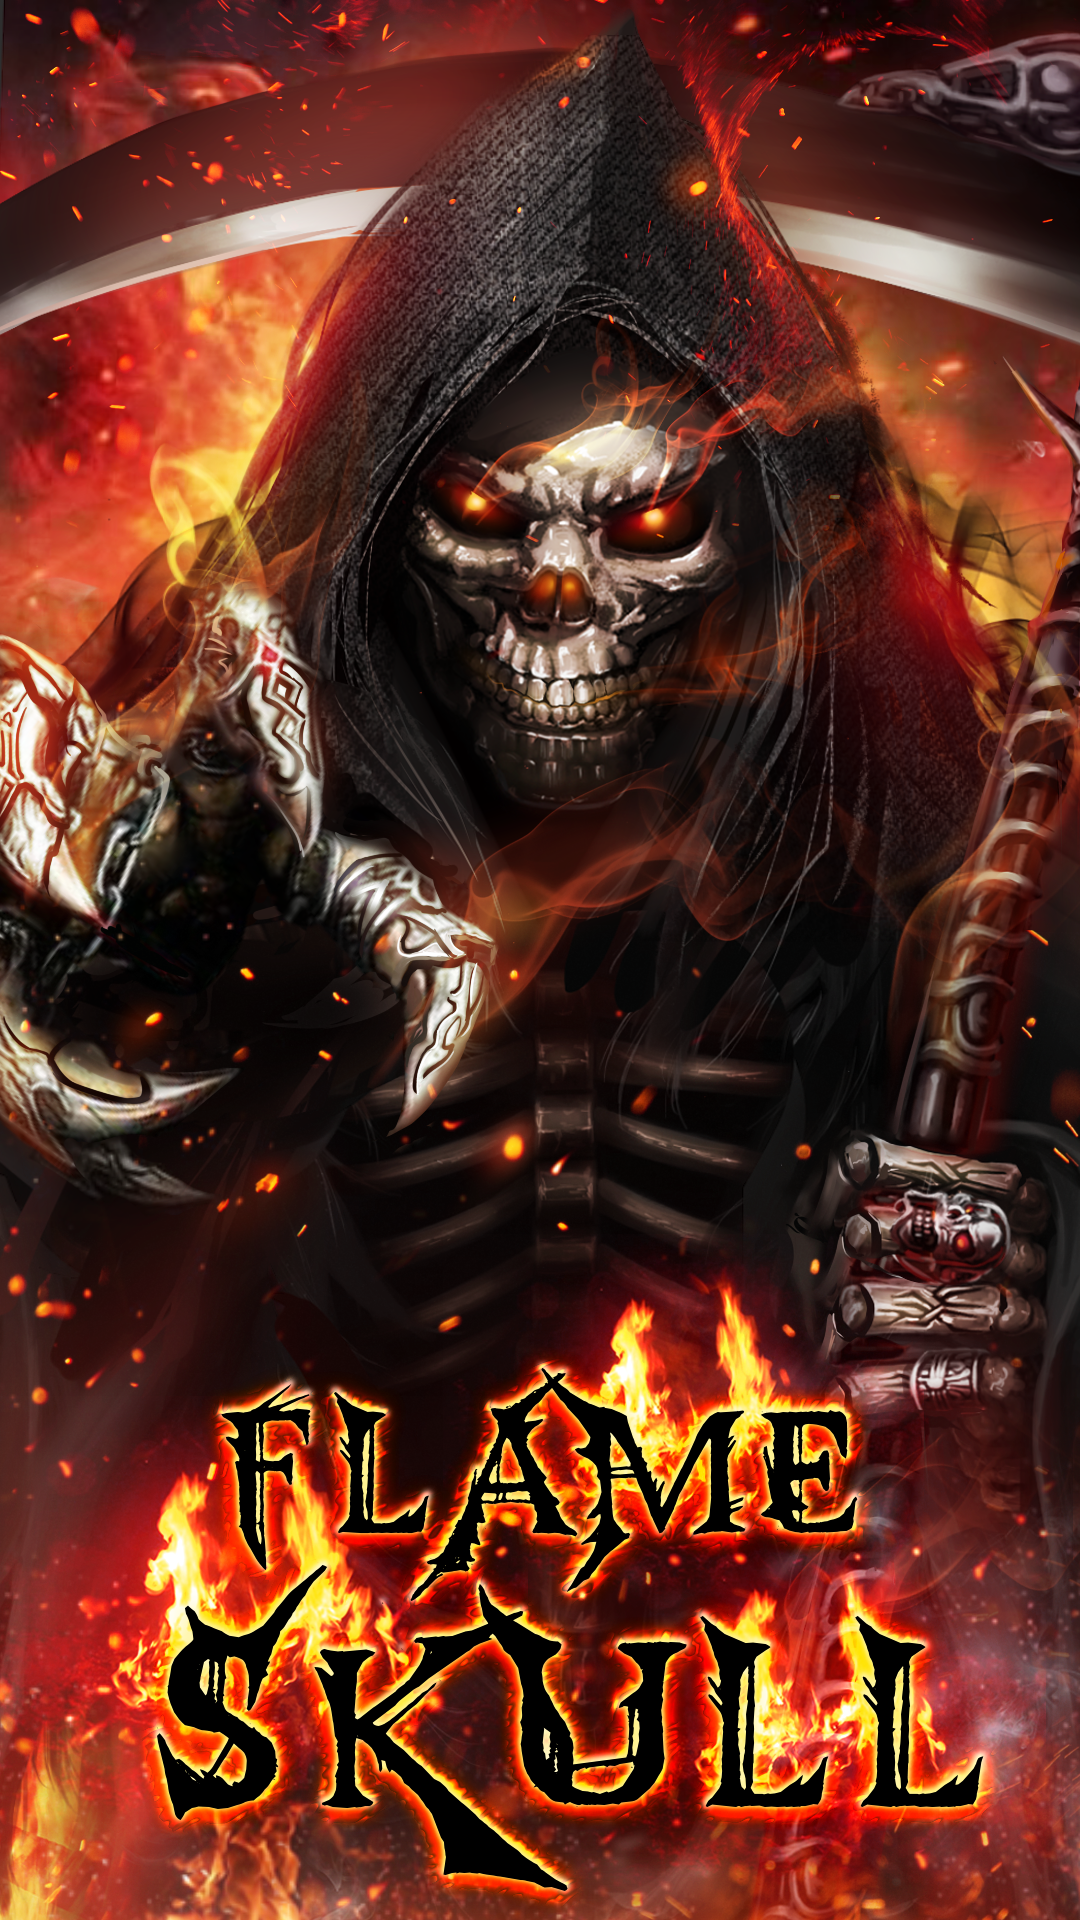 Flame skull live wallpaper! | Android live wallpapers from Ahatheme | Skull wallpaper, Live ...